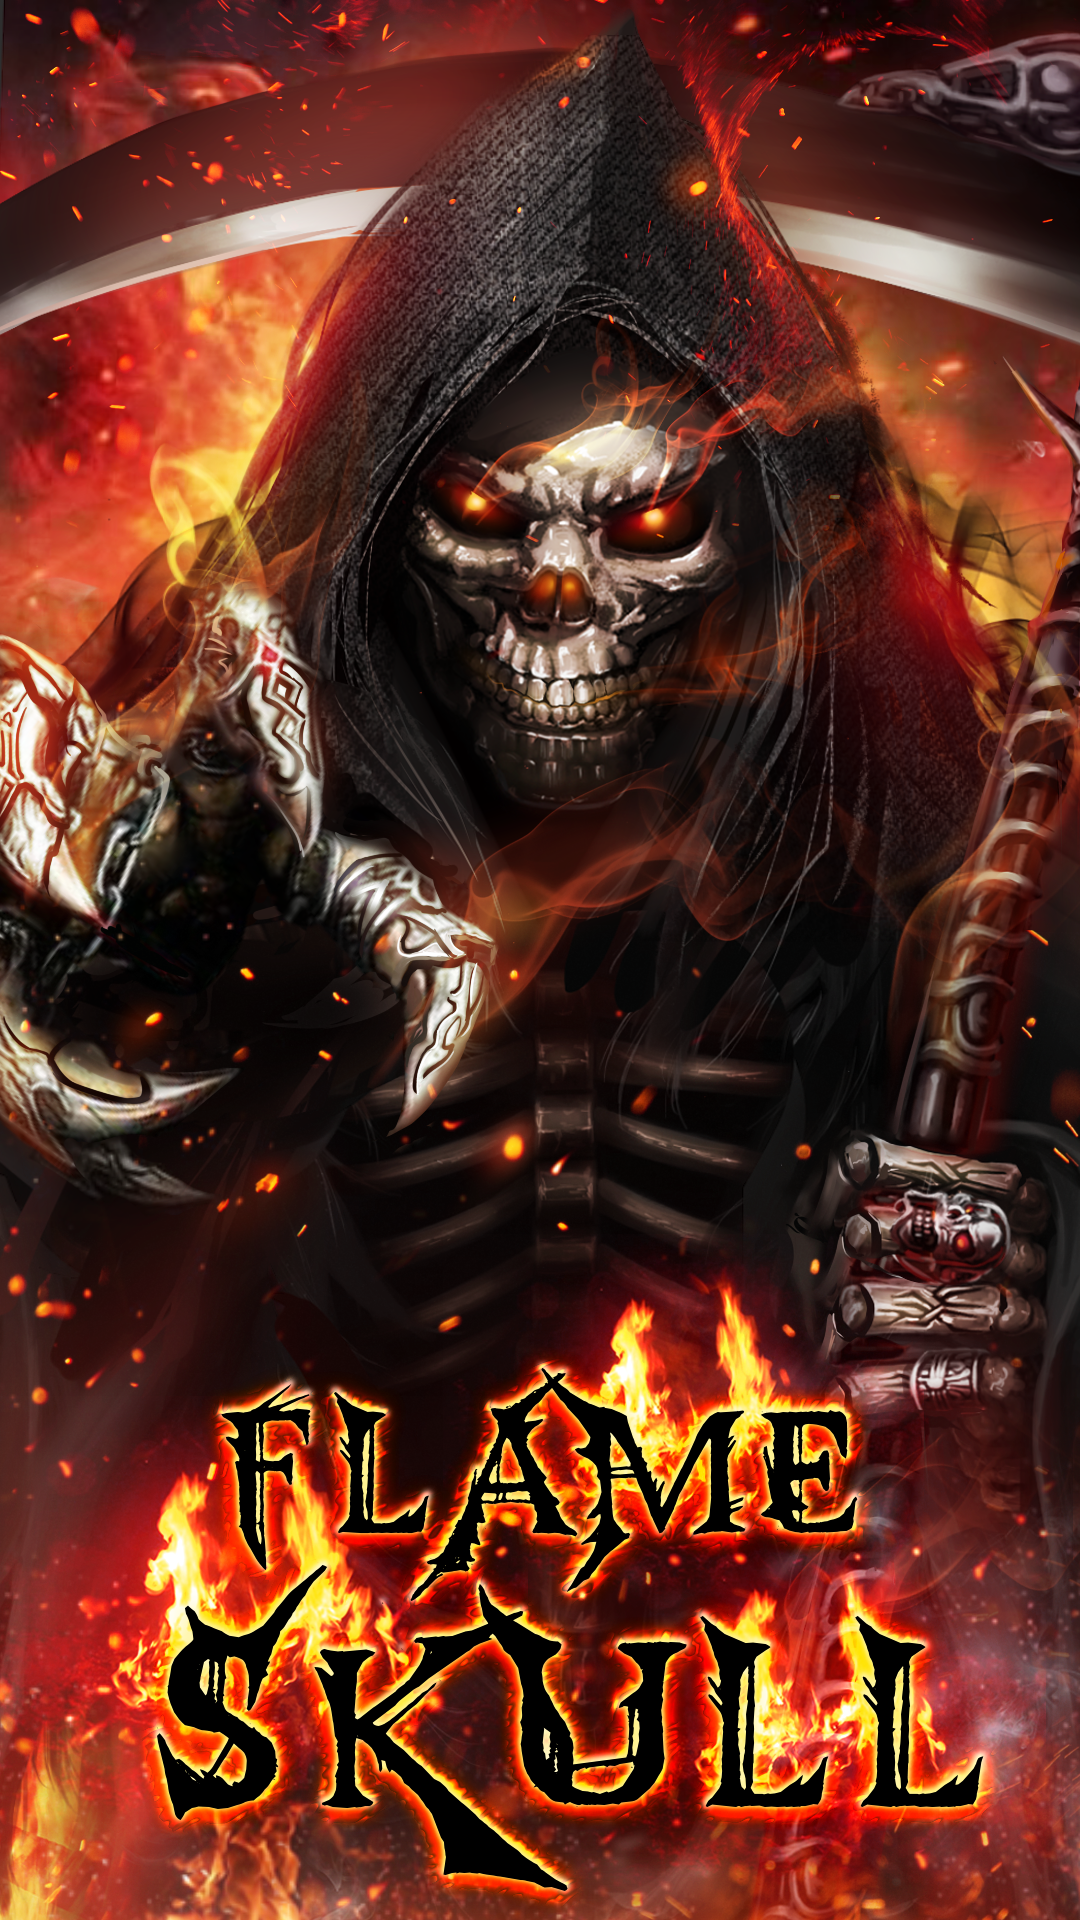 Flame skull live wallpaper! | Android live wallpapers from Ahatheme | Skull wallpaper, Live ...